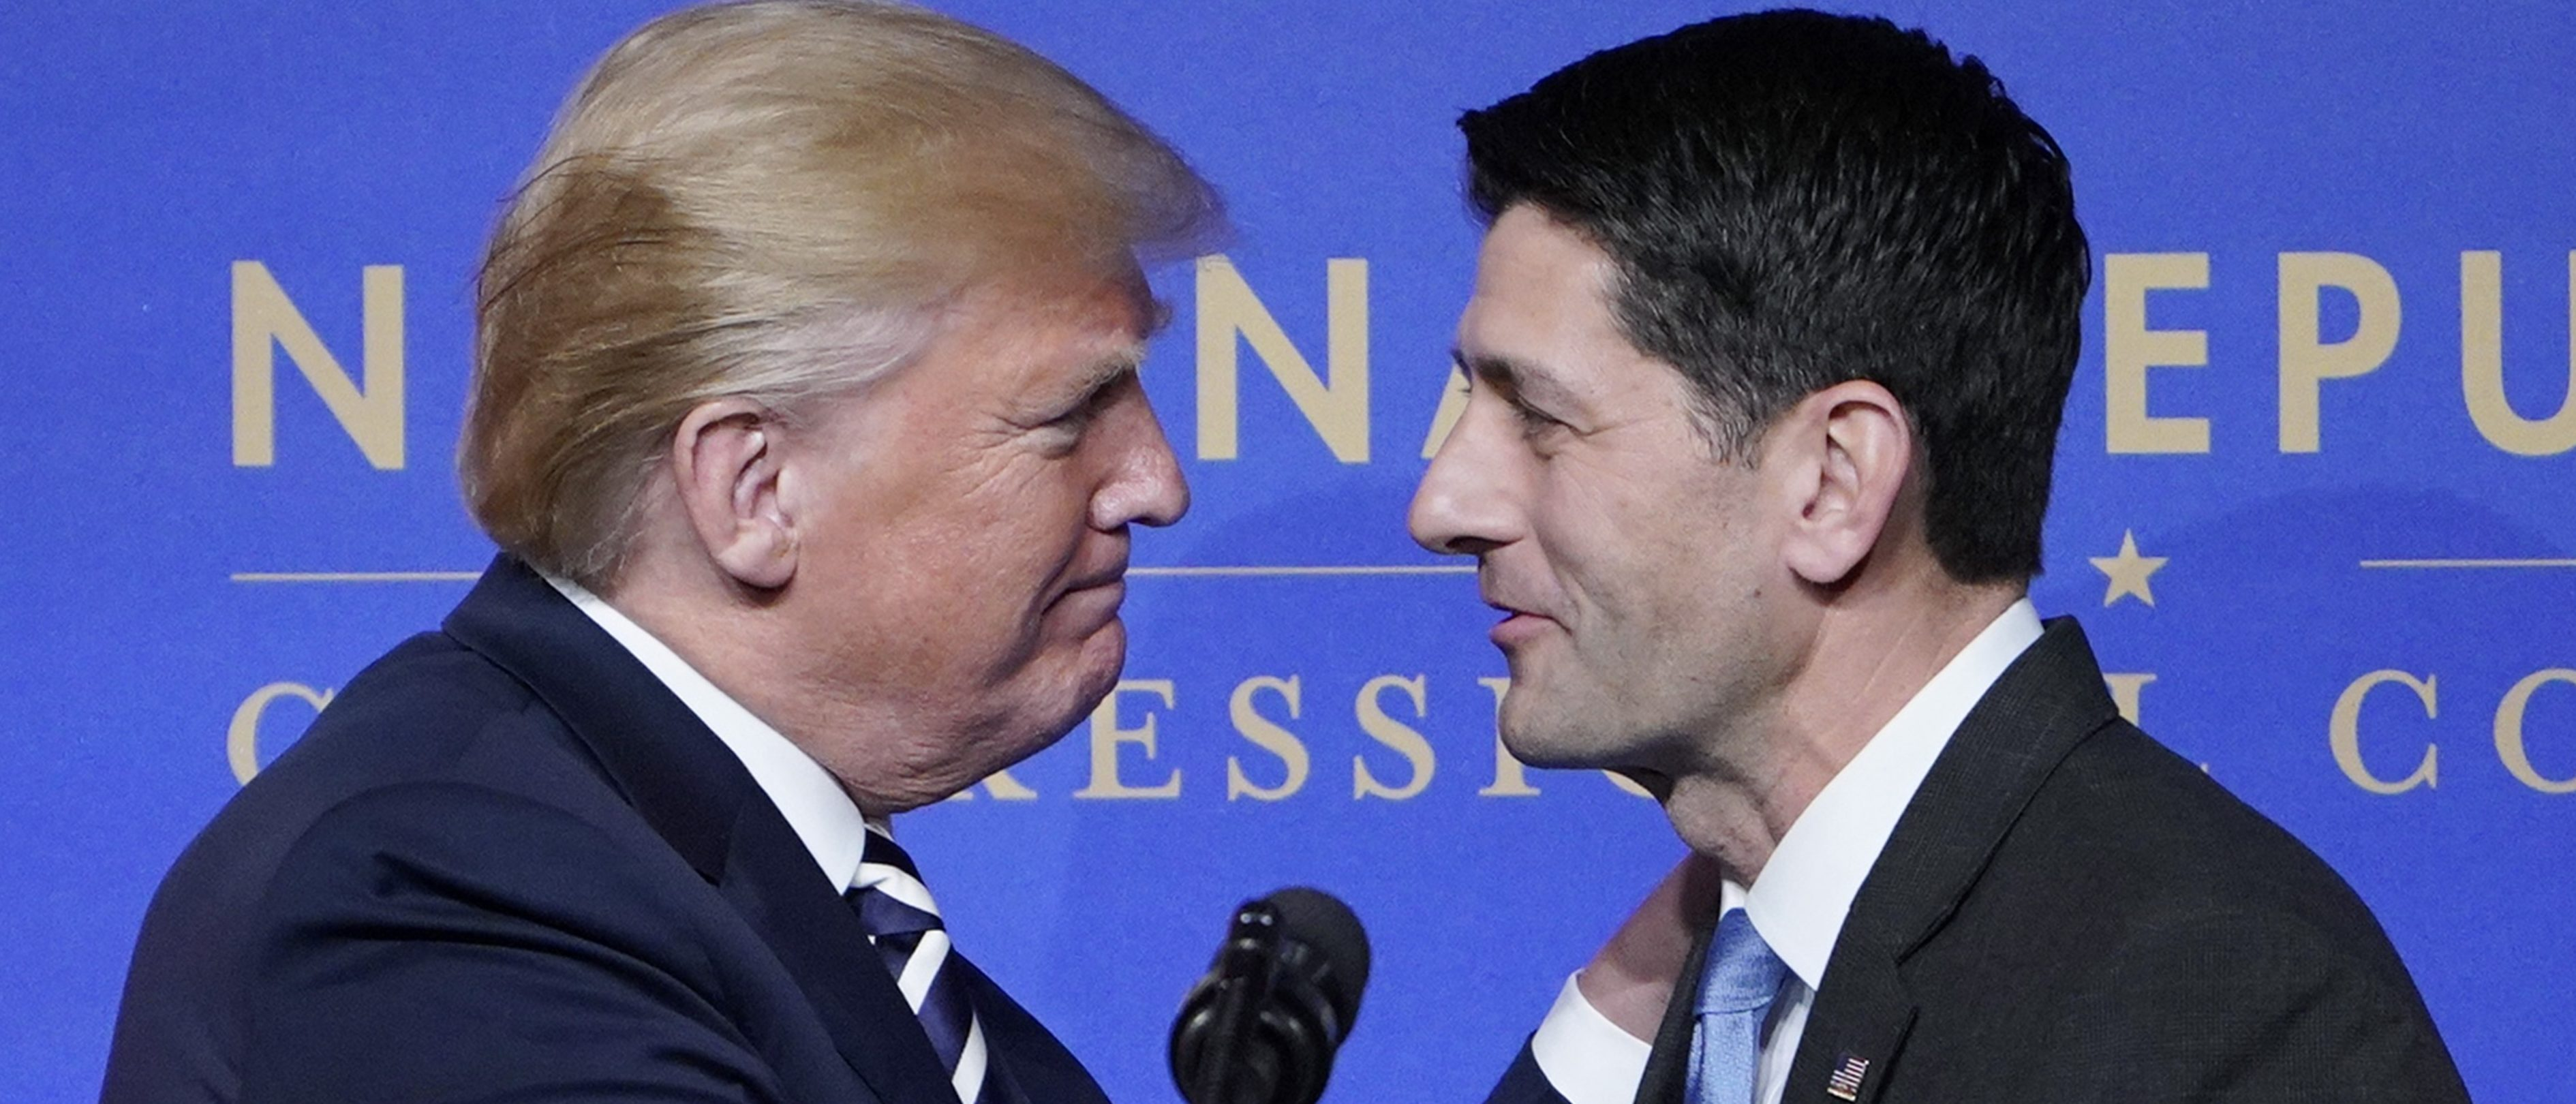 House Speaker Paul Ryan greets US President Donald Trump as he arrives on stage to speak at the National Republican Congressional Committee March Dinner at the National Building Museum on March 20, 2018 in Washington, DC. / AFP PHOTO / MANDEL NGAN